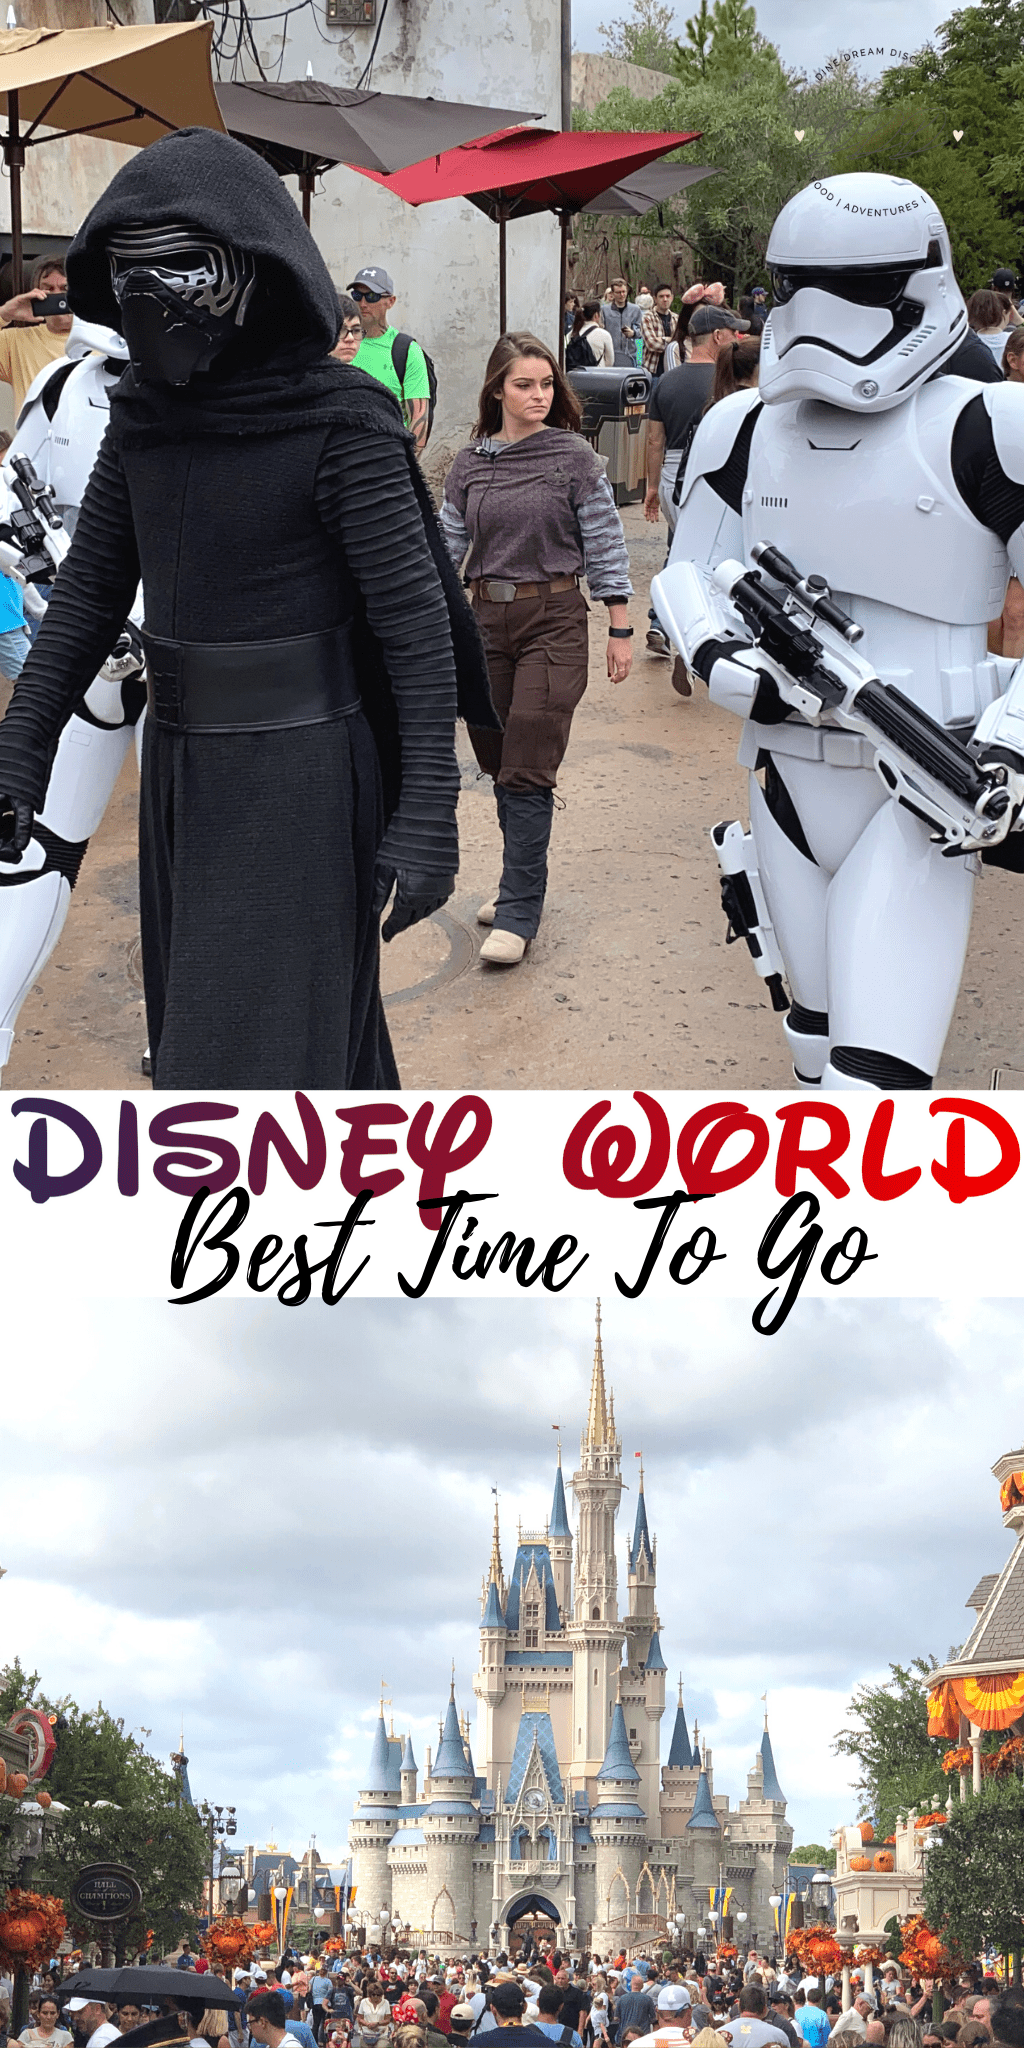 Best Time to Go to Disney World During the Year